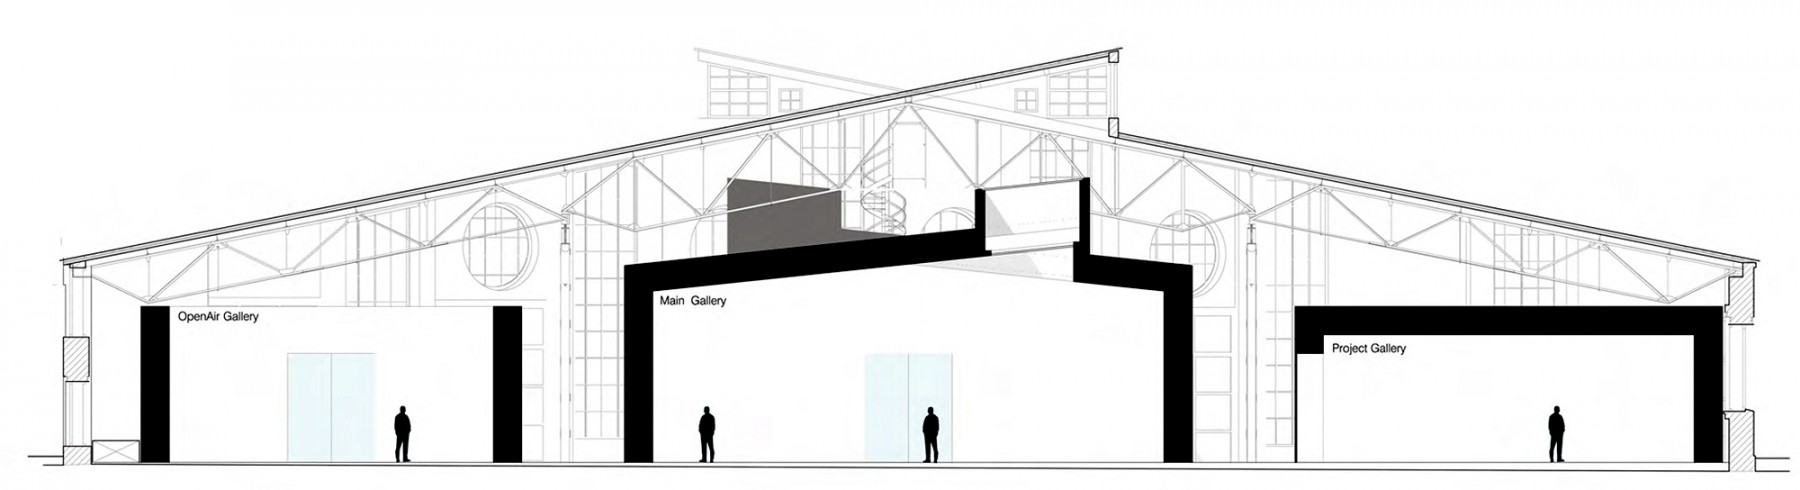 The-Garage-CCC-Moscow-Russia-Art-gallery-centre-contemporary-culture-modern-Daria-Zhukova-Jamie-Fobert-Architects-cross-section